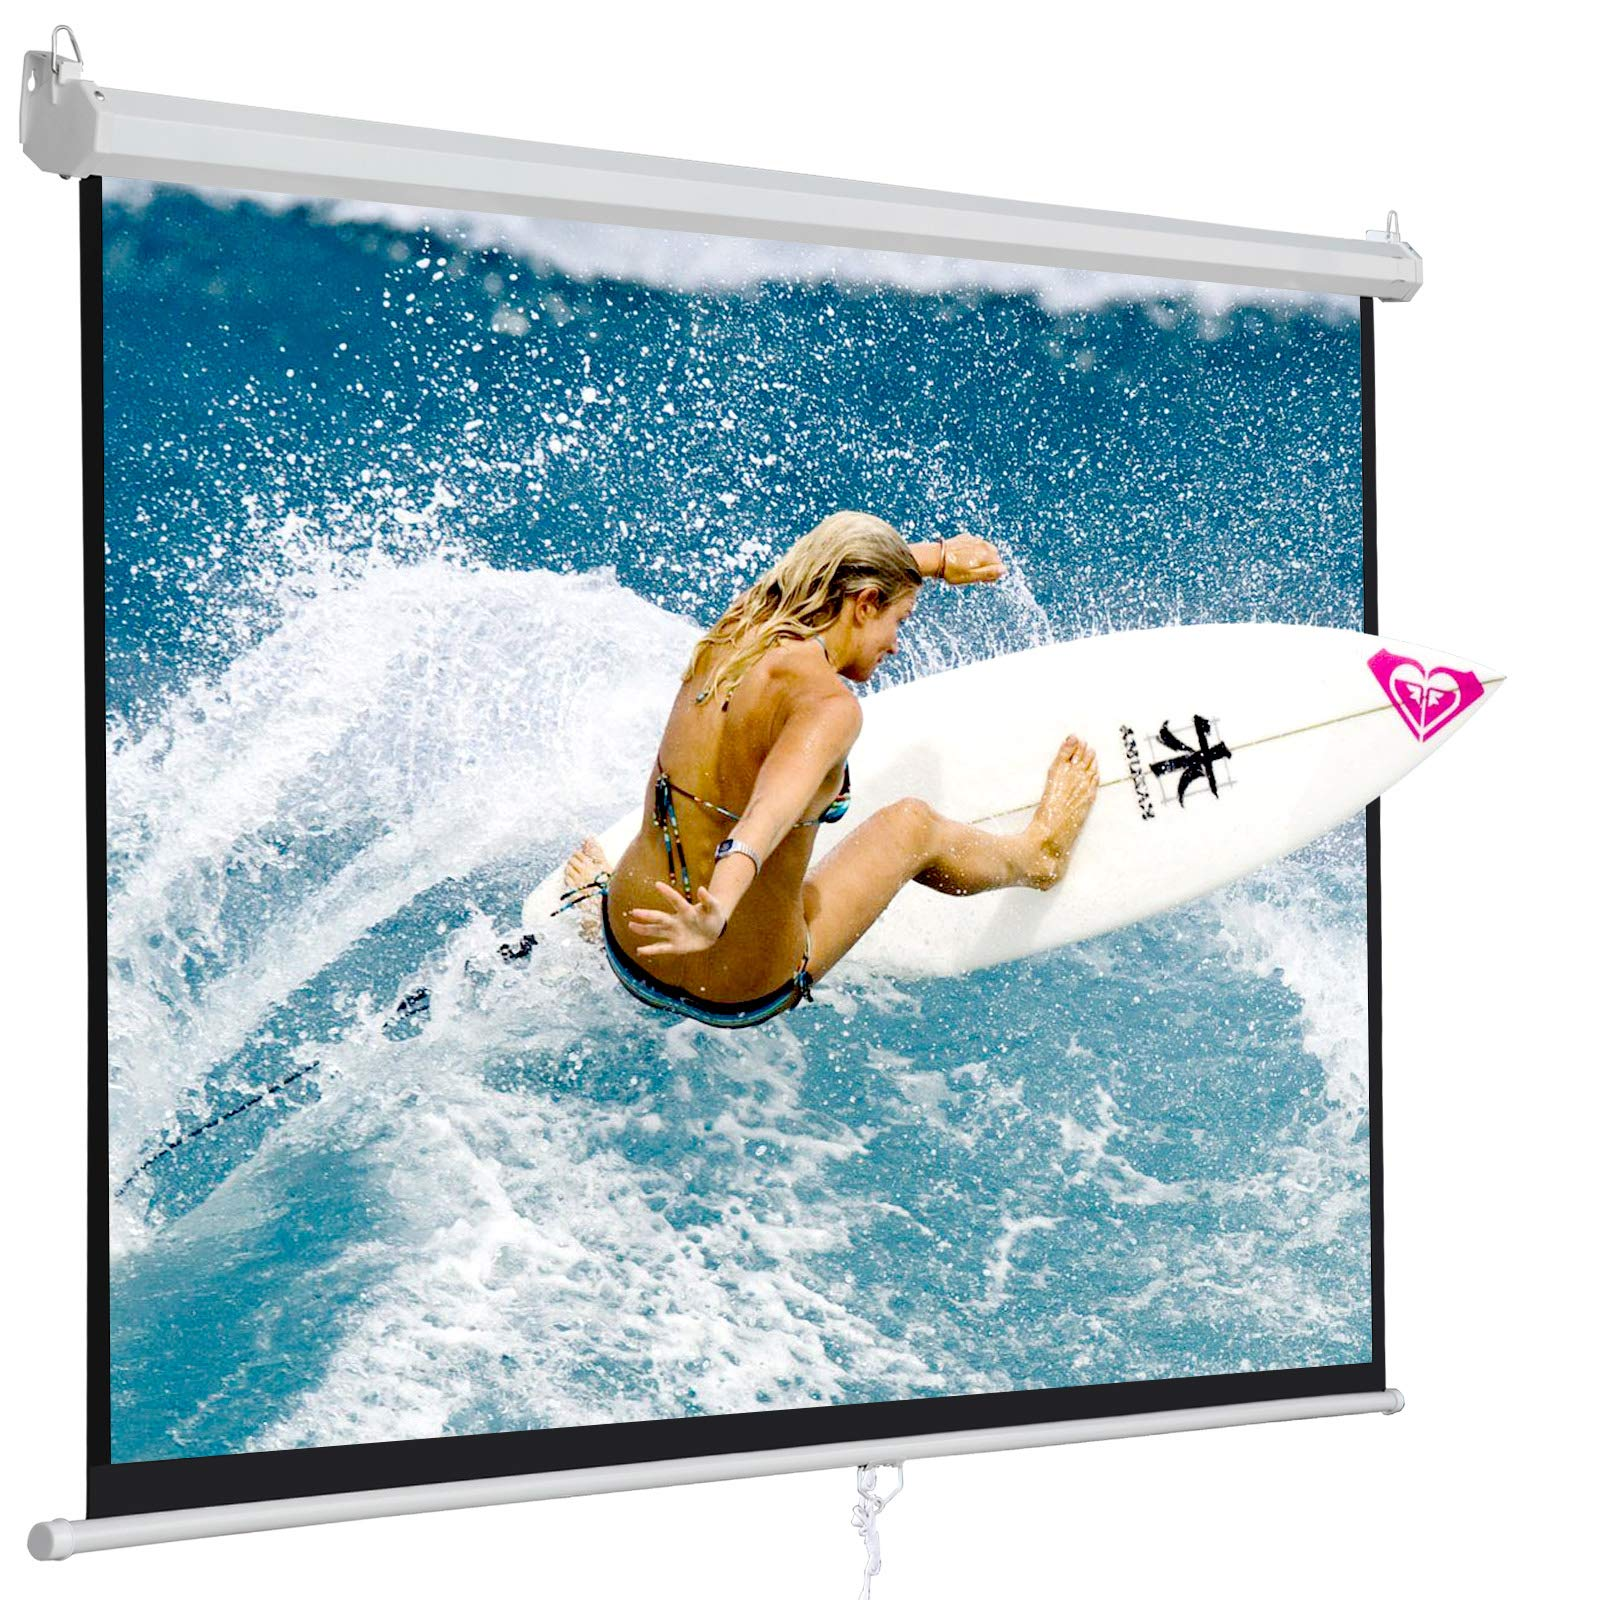 SUPER DEAL 120'' Projector Screen Projection Screen Manual Pull Down HD Screen 1:1 Format for Home Cinema Theater Presentation Education Outdoor Indoor Public Display by SUPER DEAL